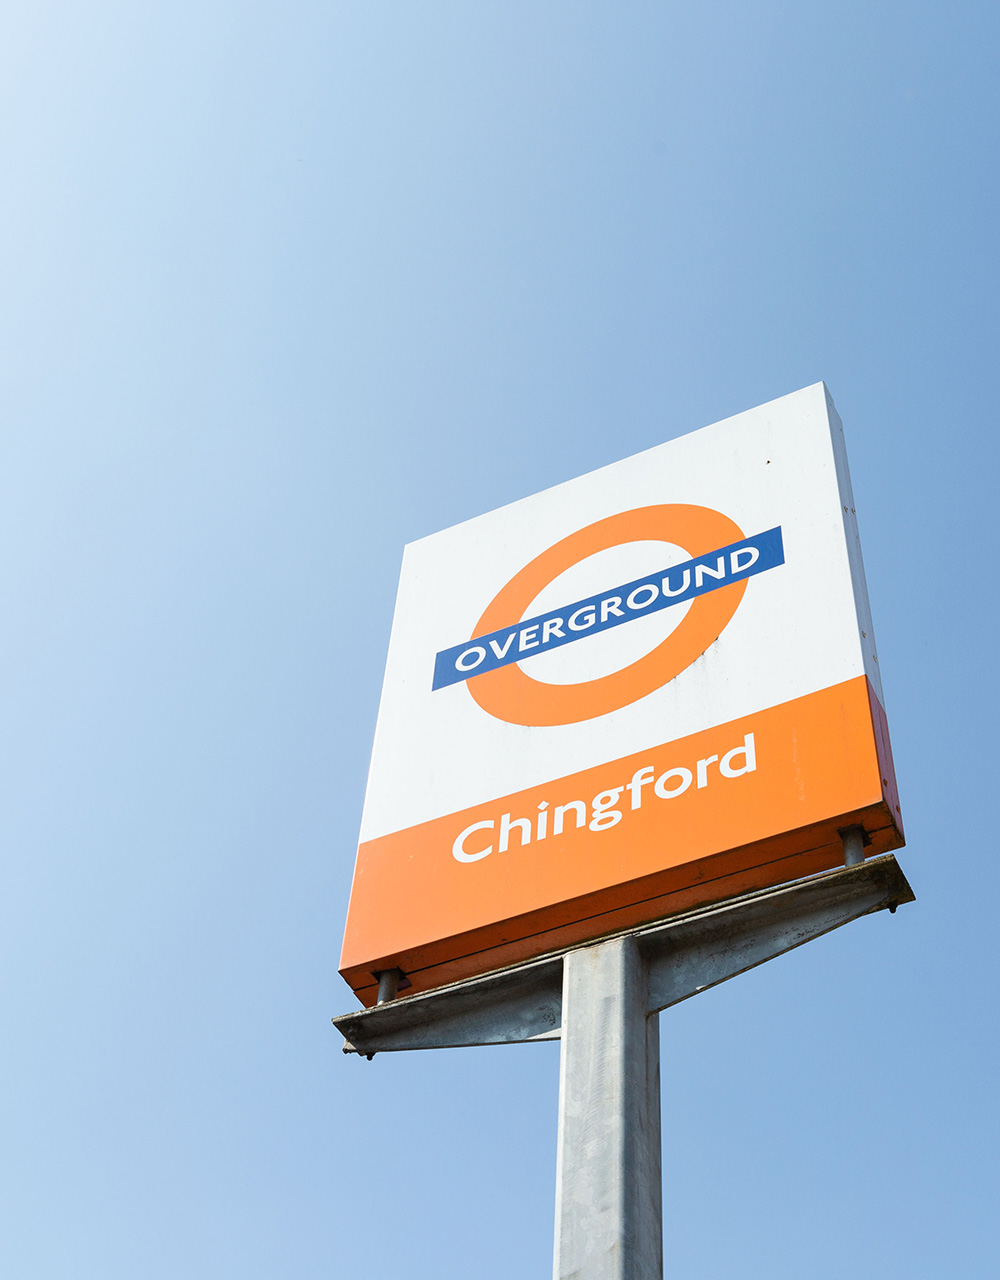 Chingford — Stow Brothers